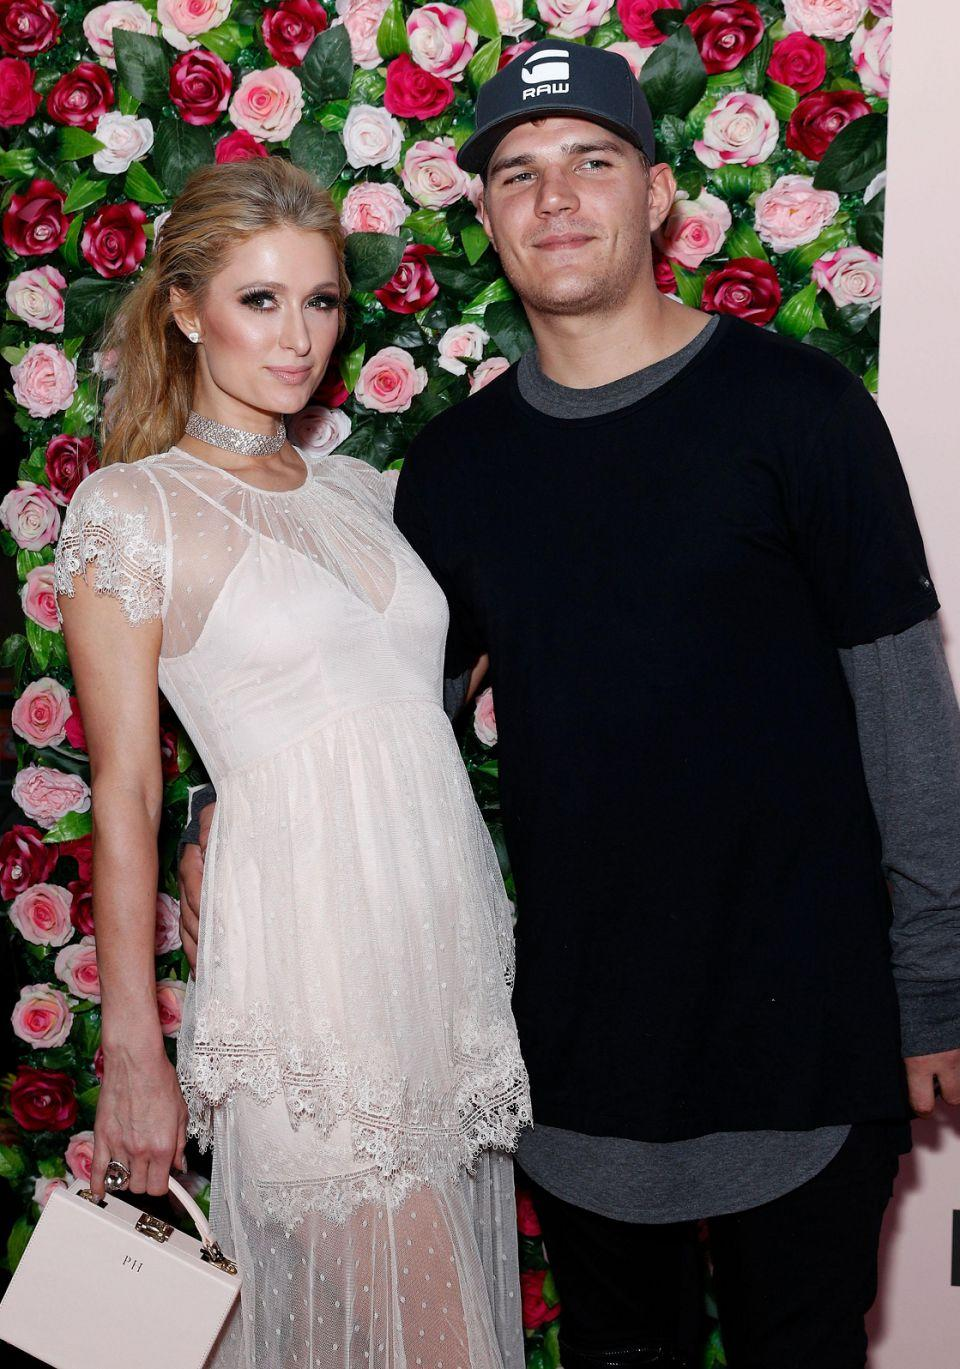 She also had her boyfriend Chris Zylka on hand to support her as she launched her new perfume. Source: Getty